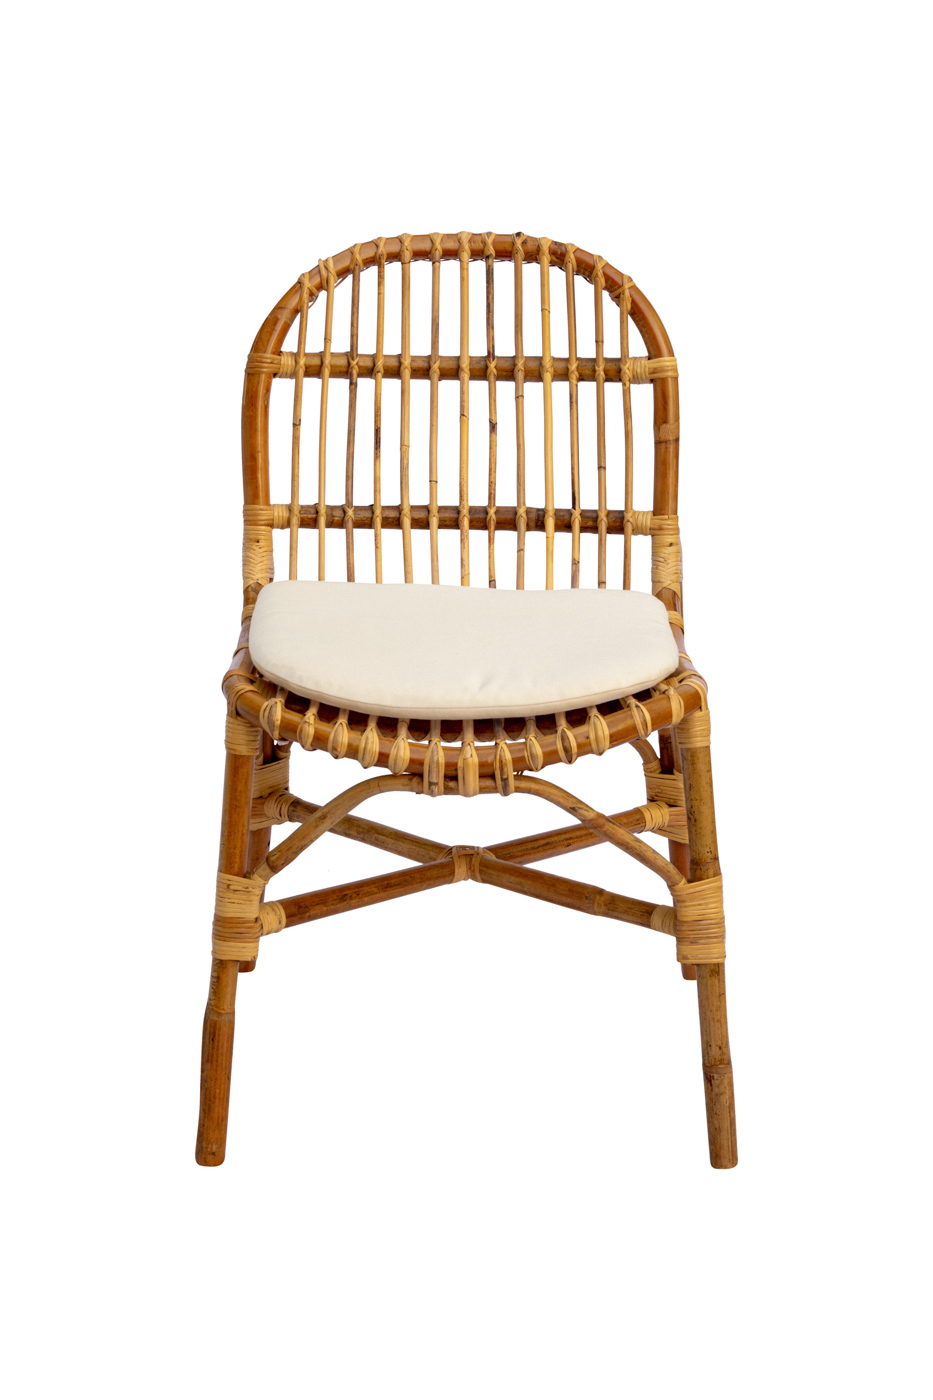 Luberon chair in rattan